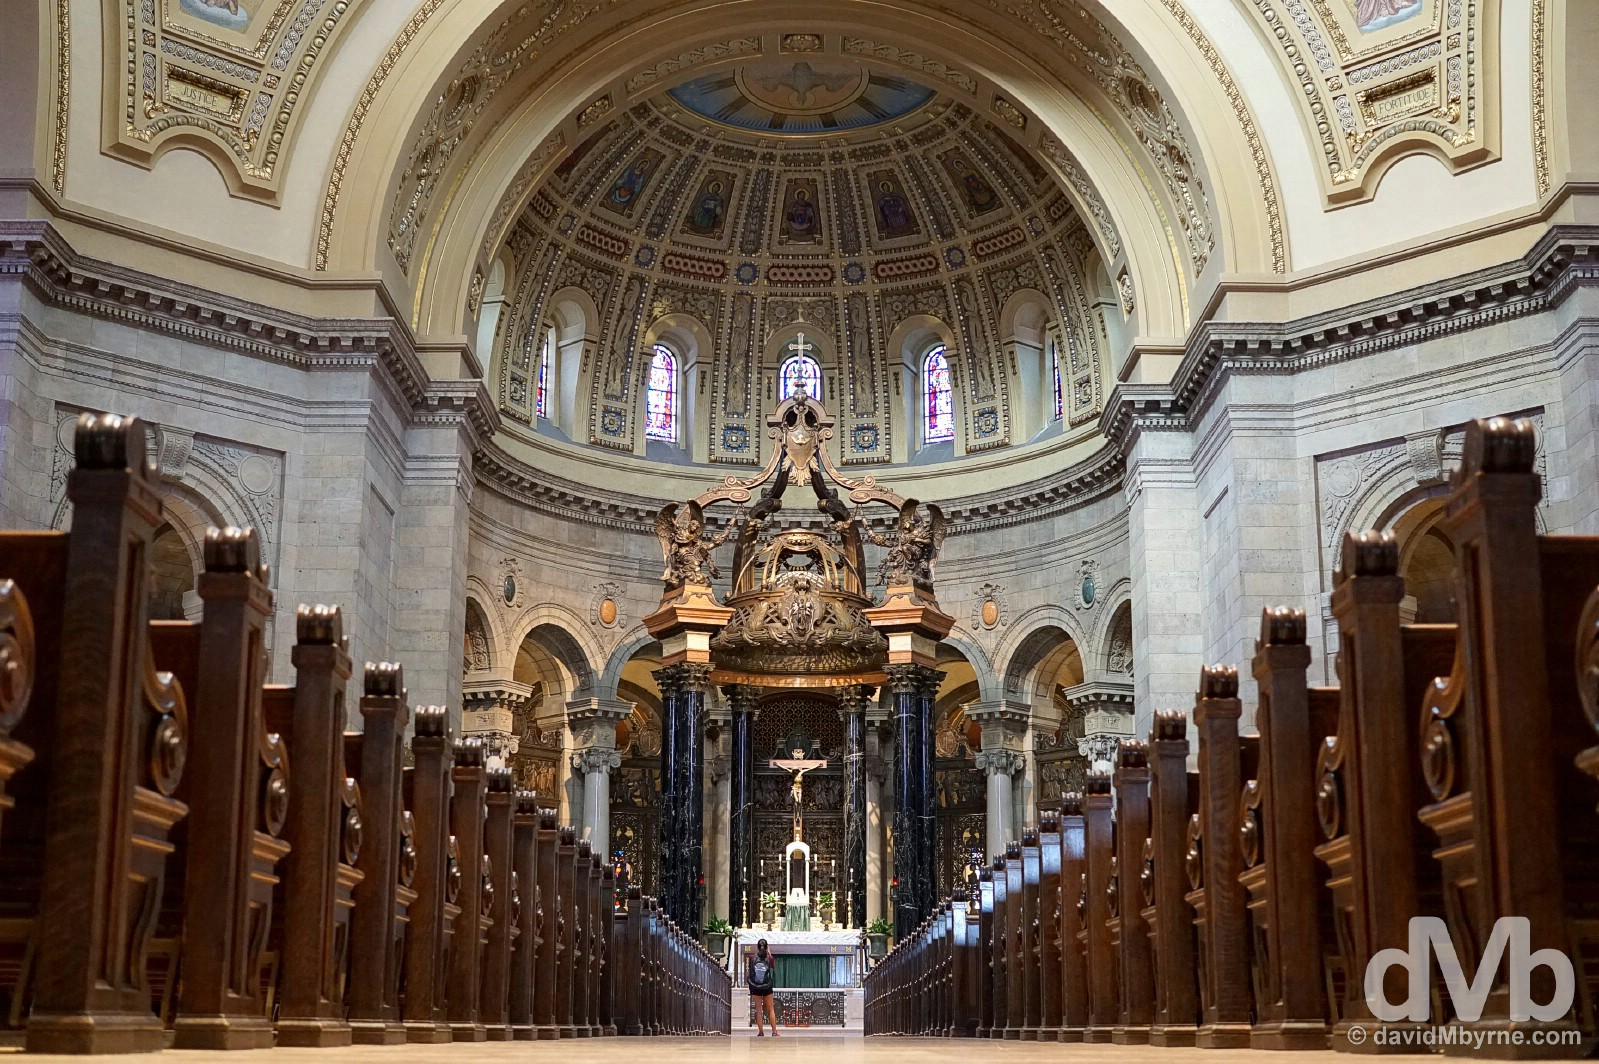 The interior of the Cathedral of St. Paul in St Paul, Minnesota. August 30, 2016.